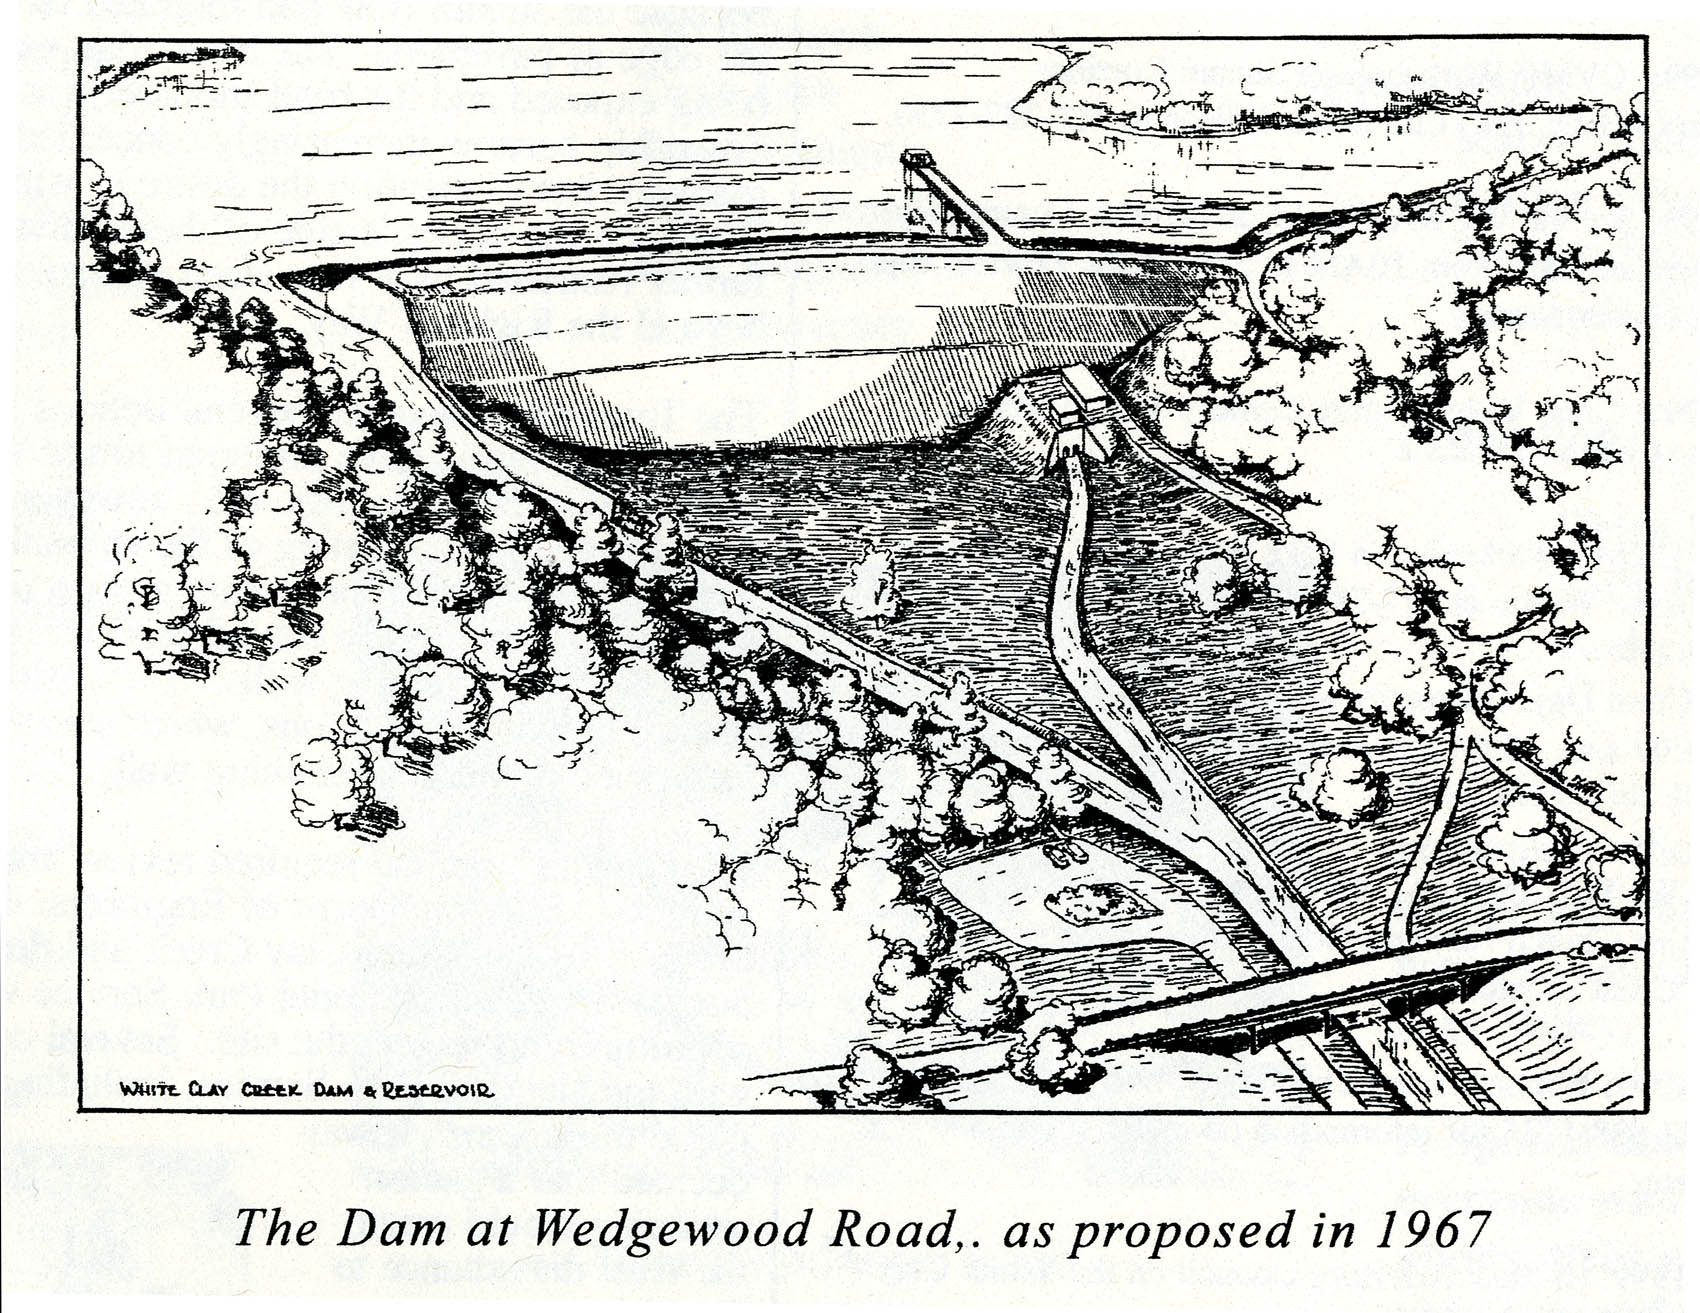 The Dam at Wedgewood Road as proposed in 1967 (Illustration)